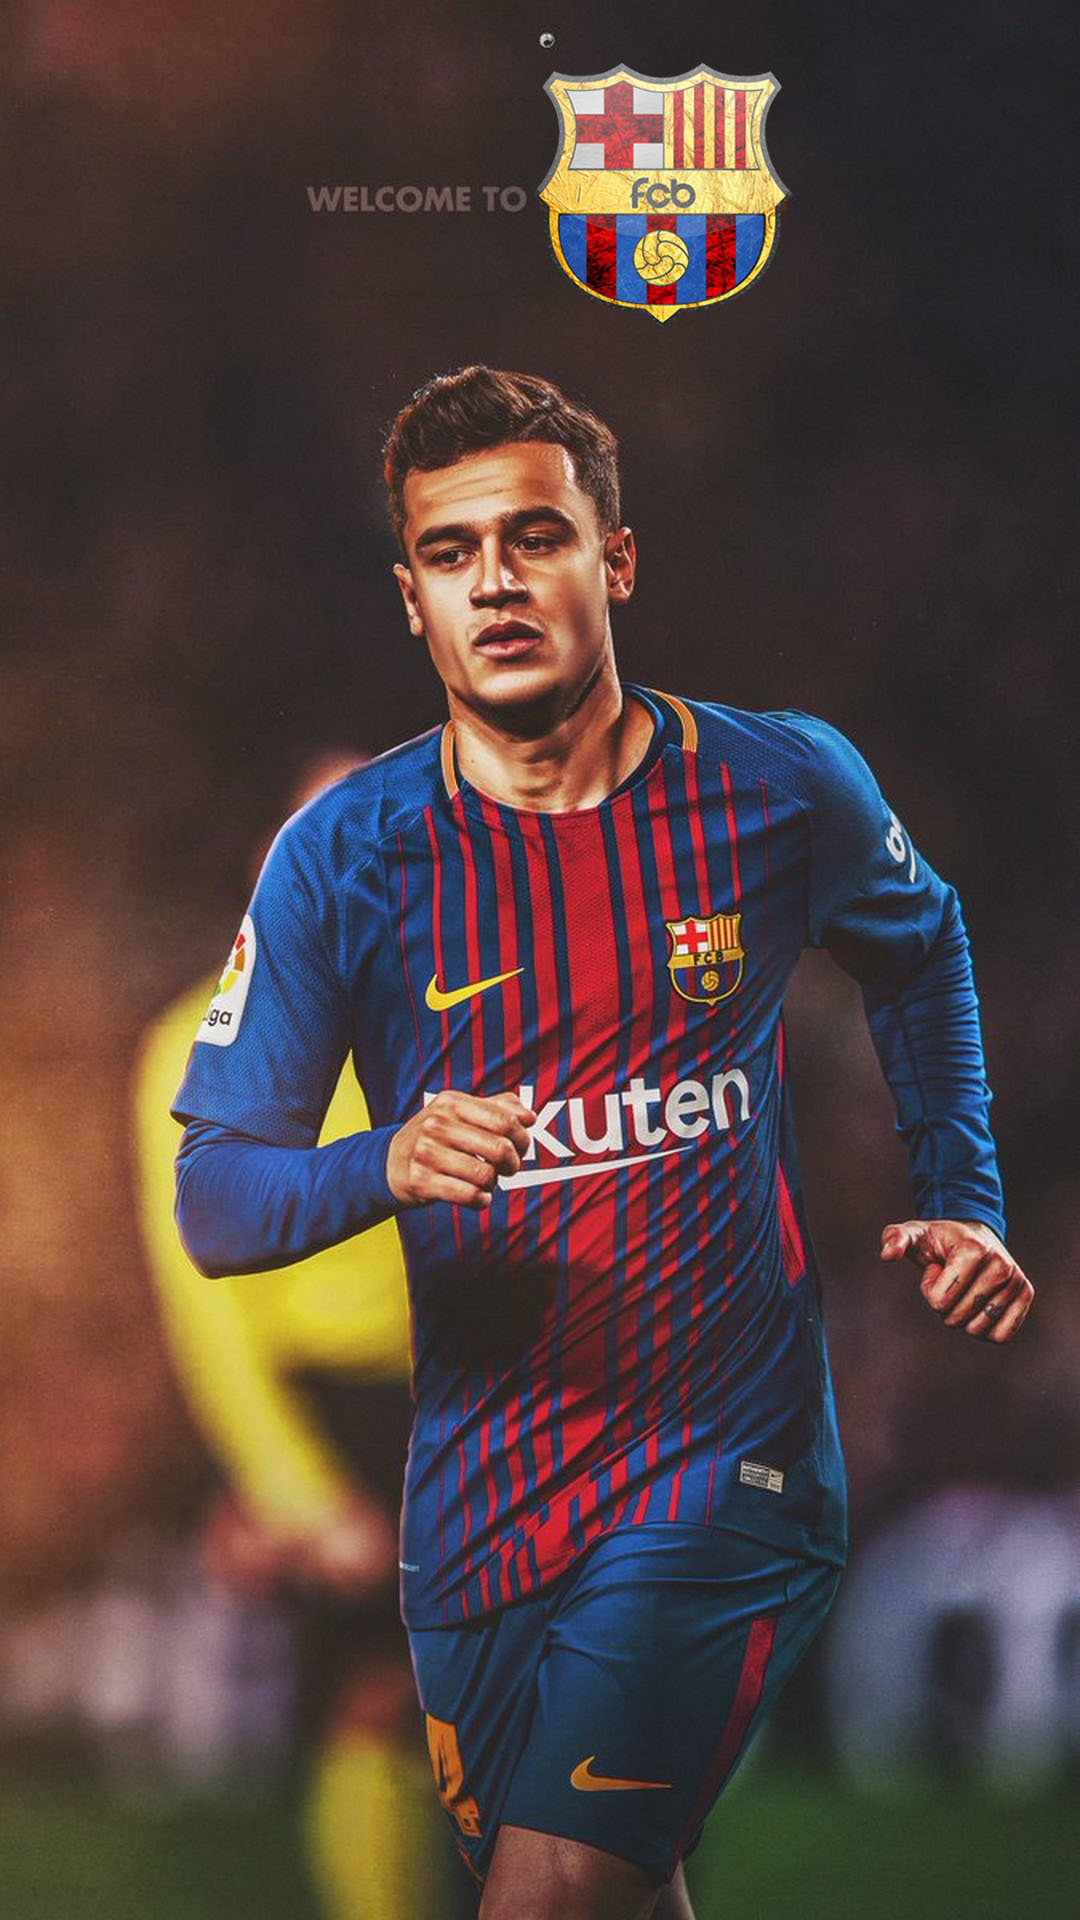 Barcelona coutinho wallpaper android 2019 android wallpapers - Coutinho wallpaper hd ...